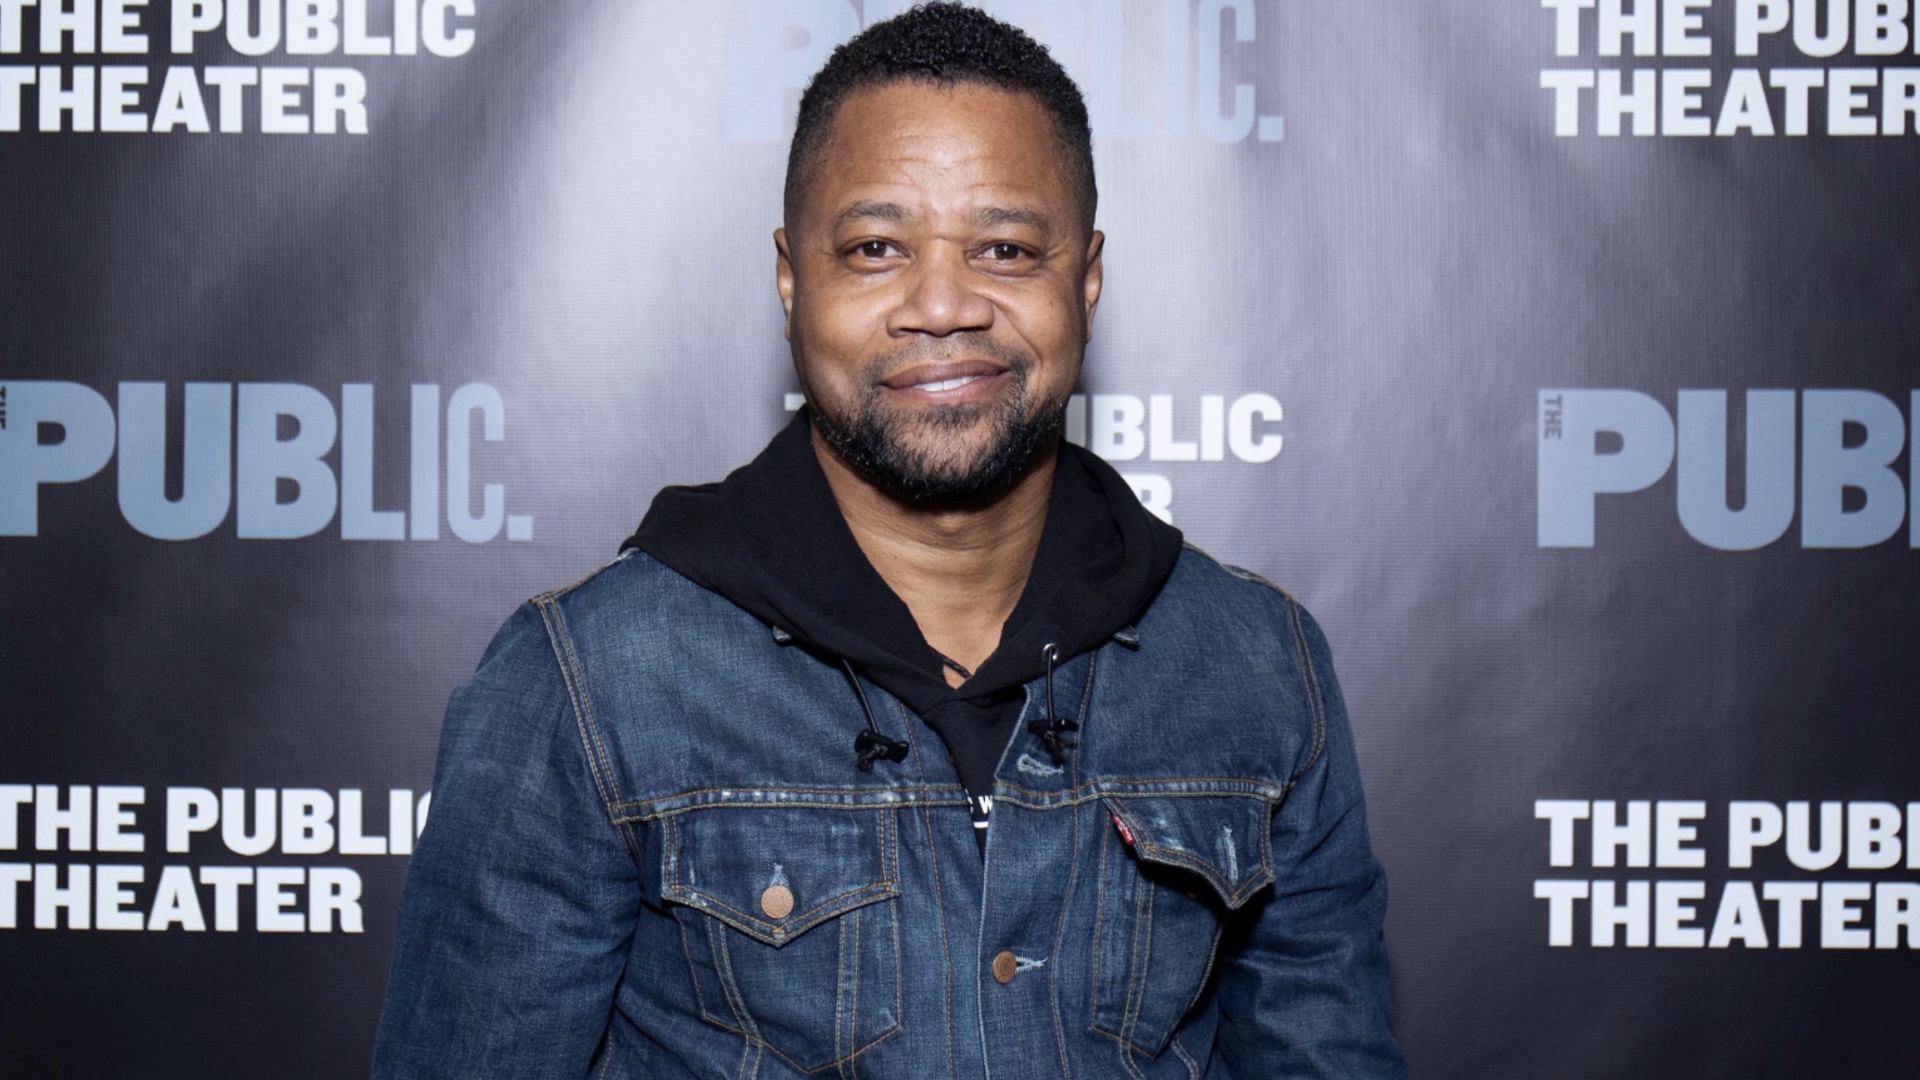 Cuba Gooding Jr. Accused By Another Woman Of Sexual Assault